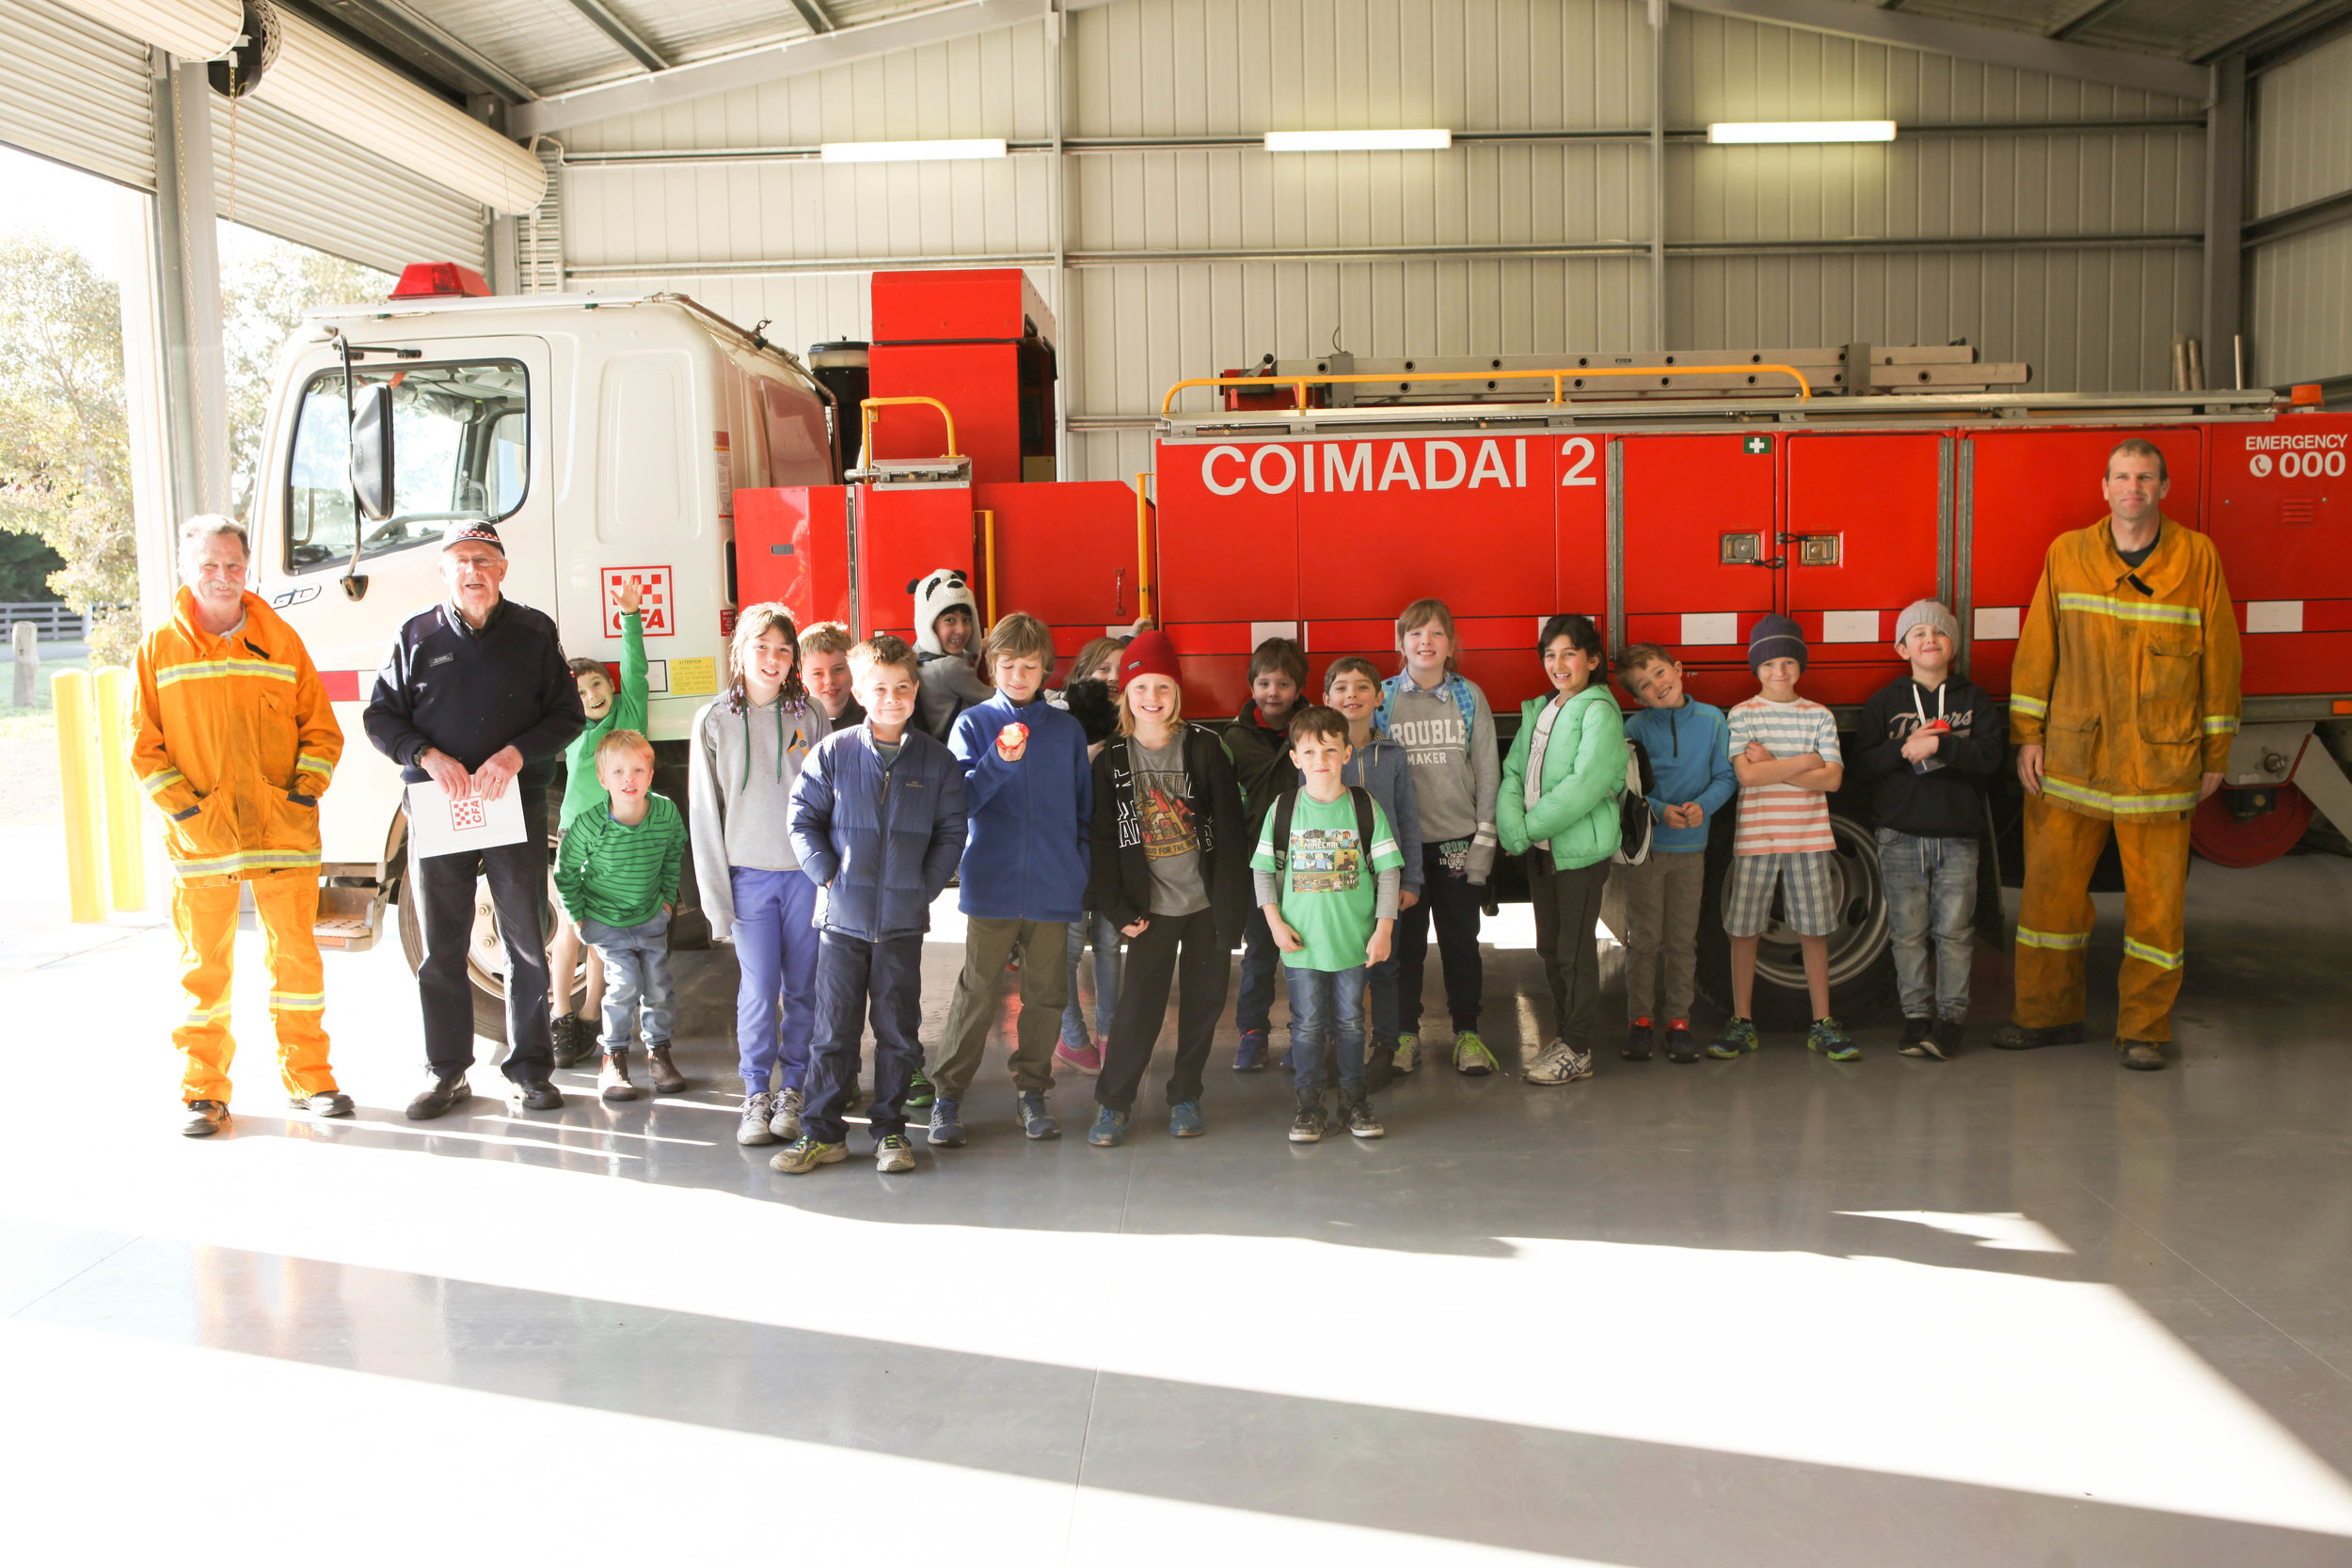 rangers-at-coimadai-fire-station---thanks-guys_19602102850_o.jpg